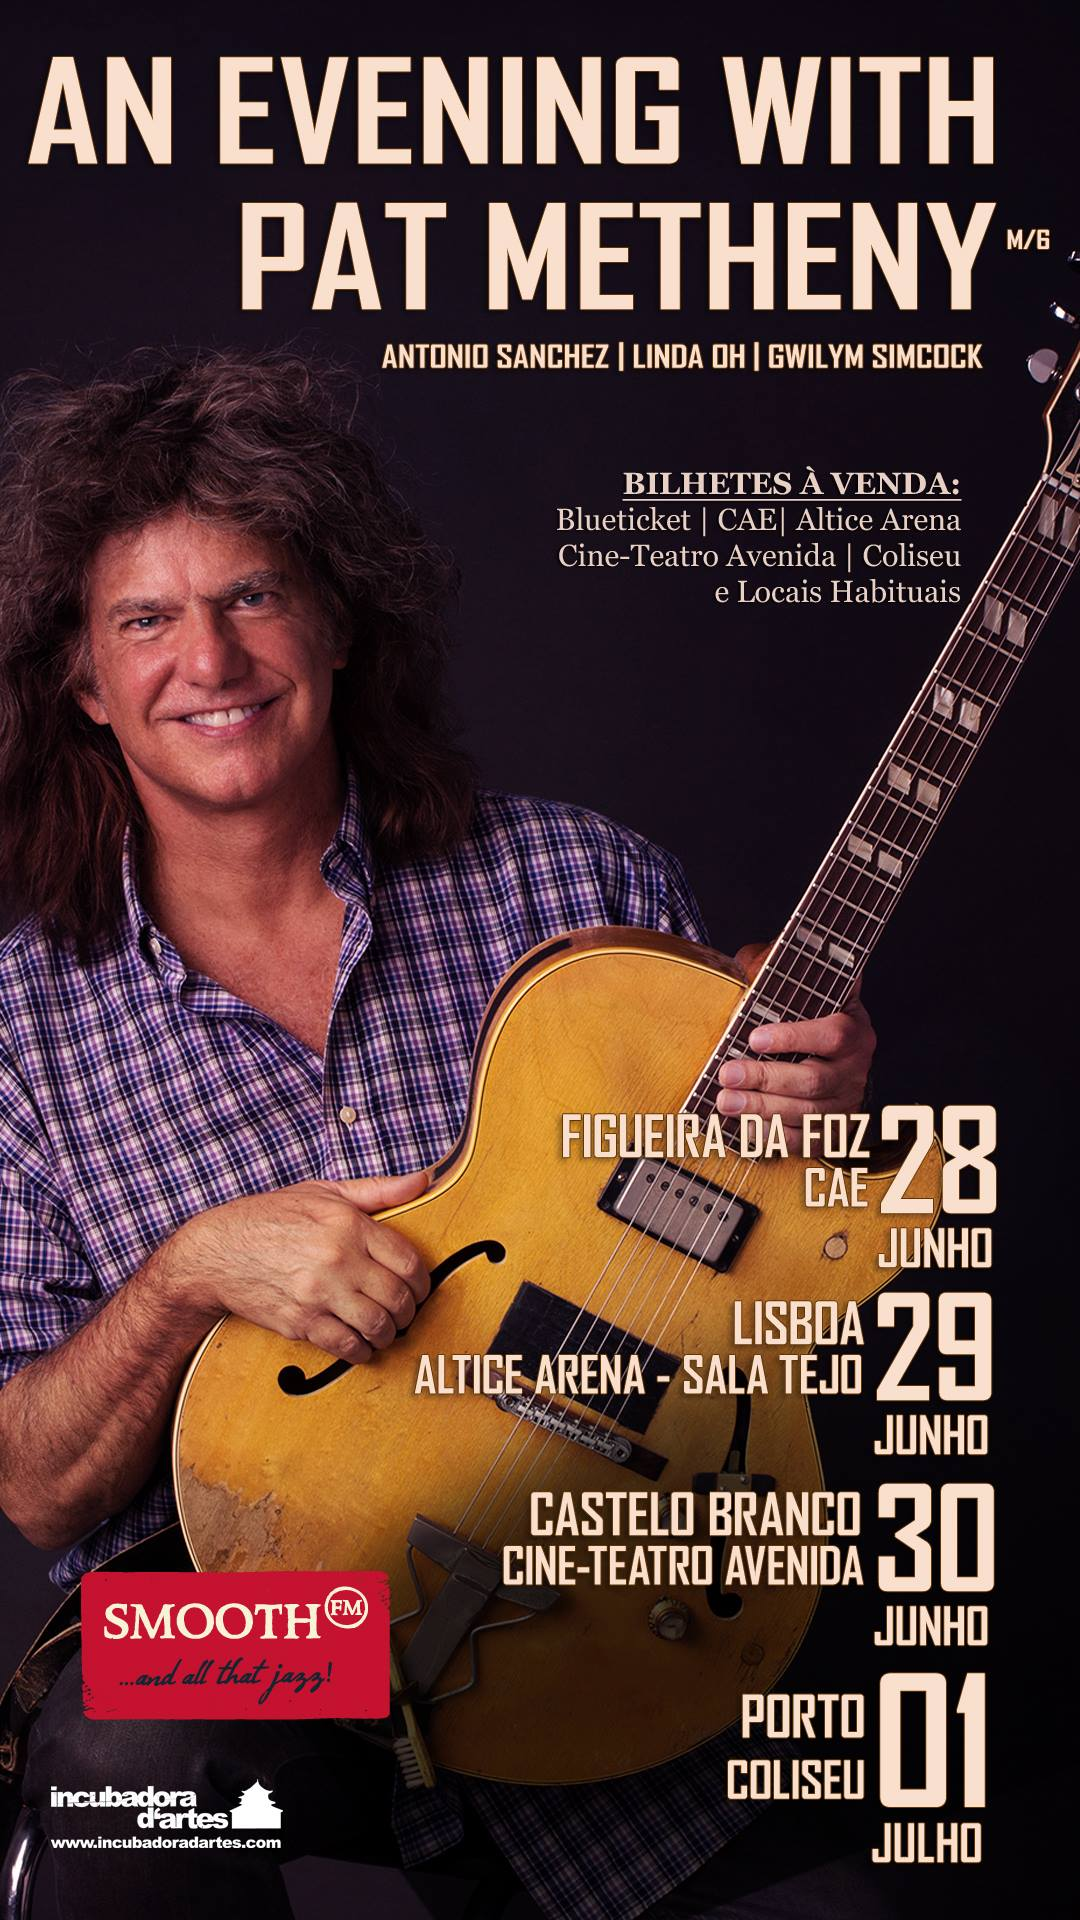 AN EVENING WITH PAT METHENY cartaz face